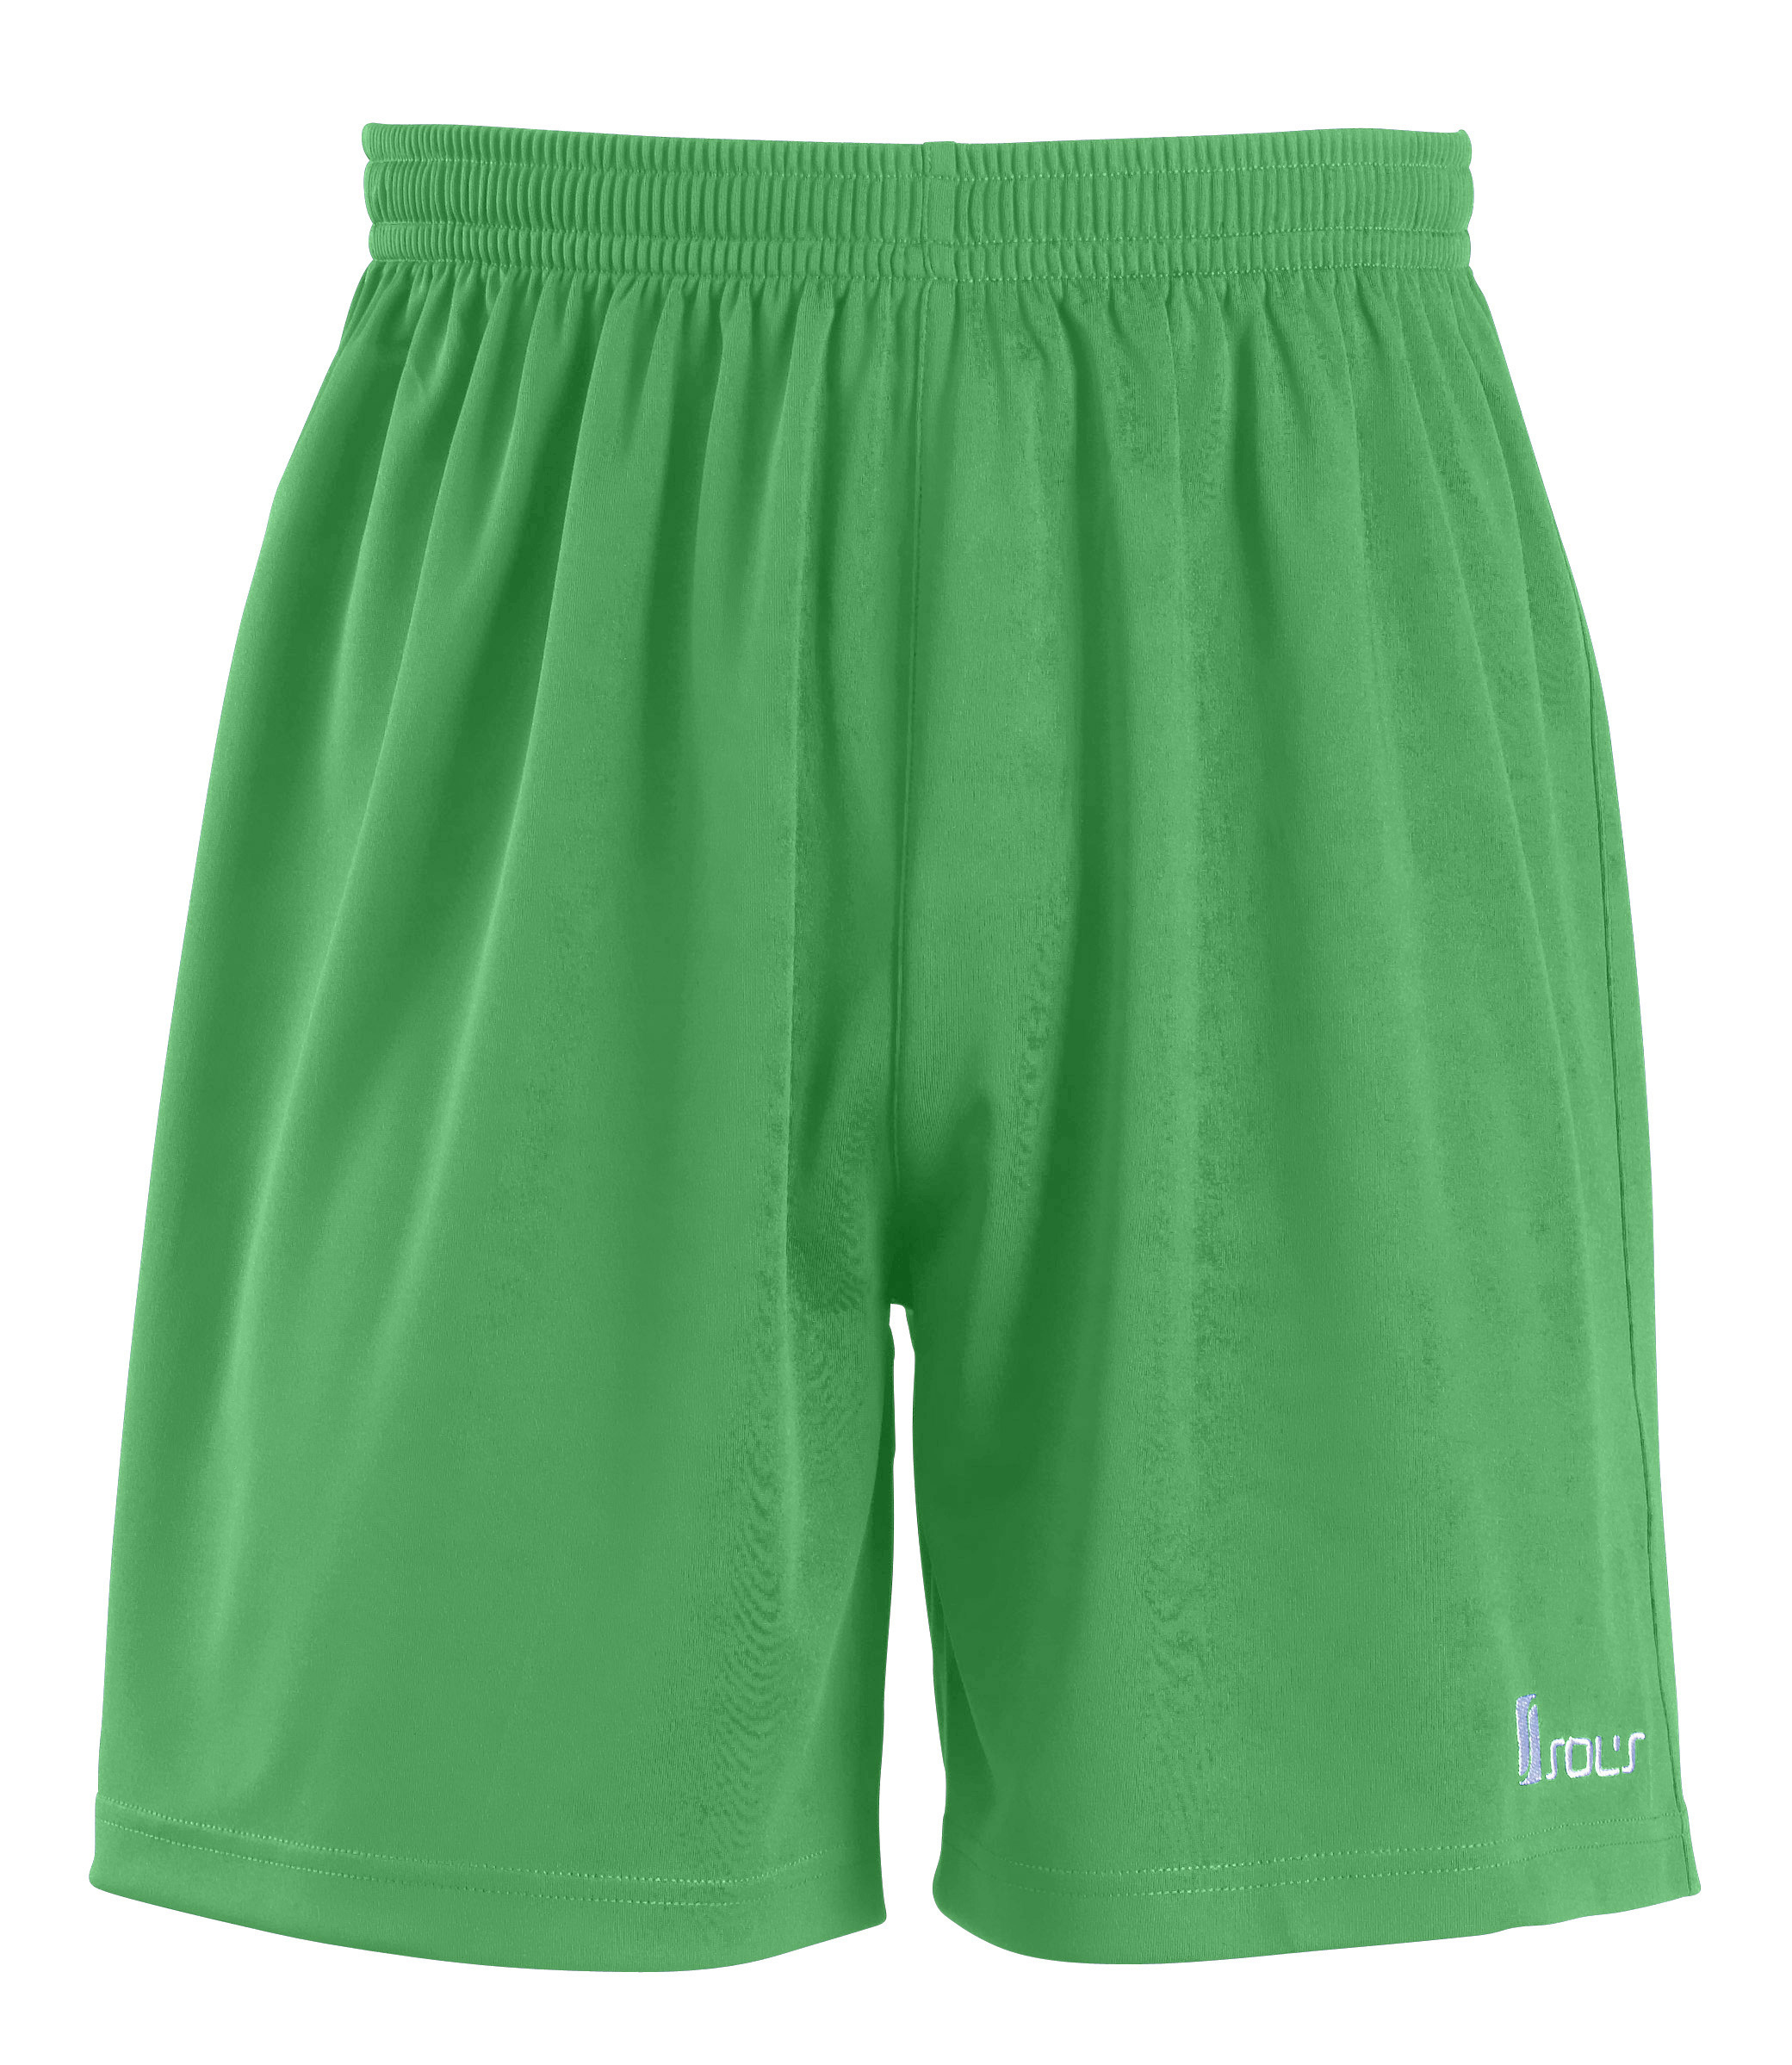 Borussia - Bright Green - S